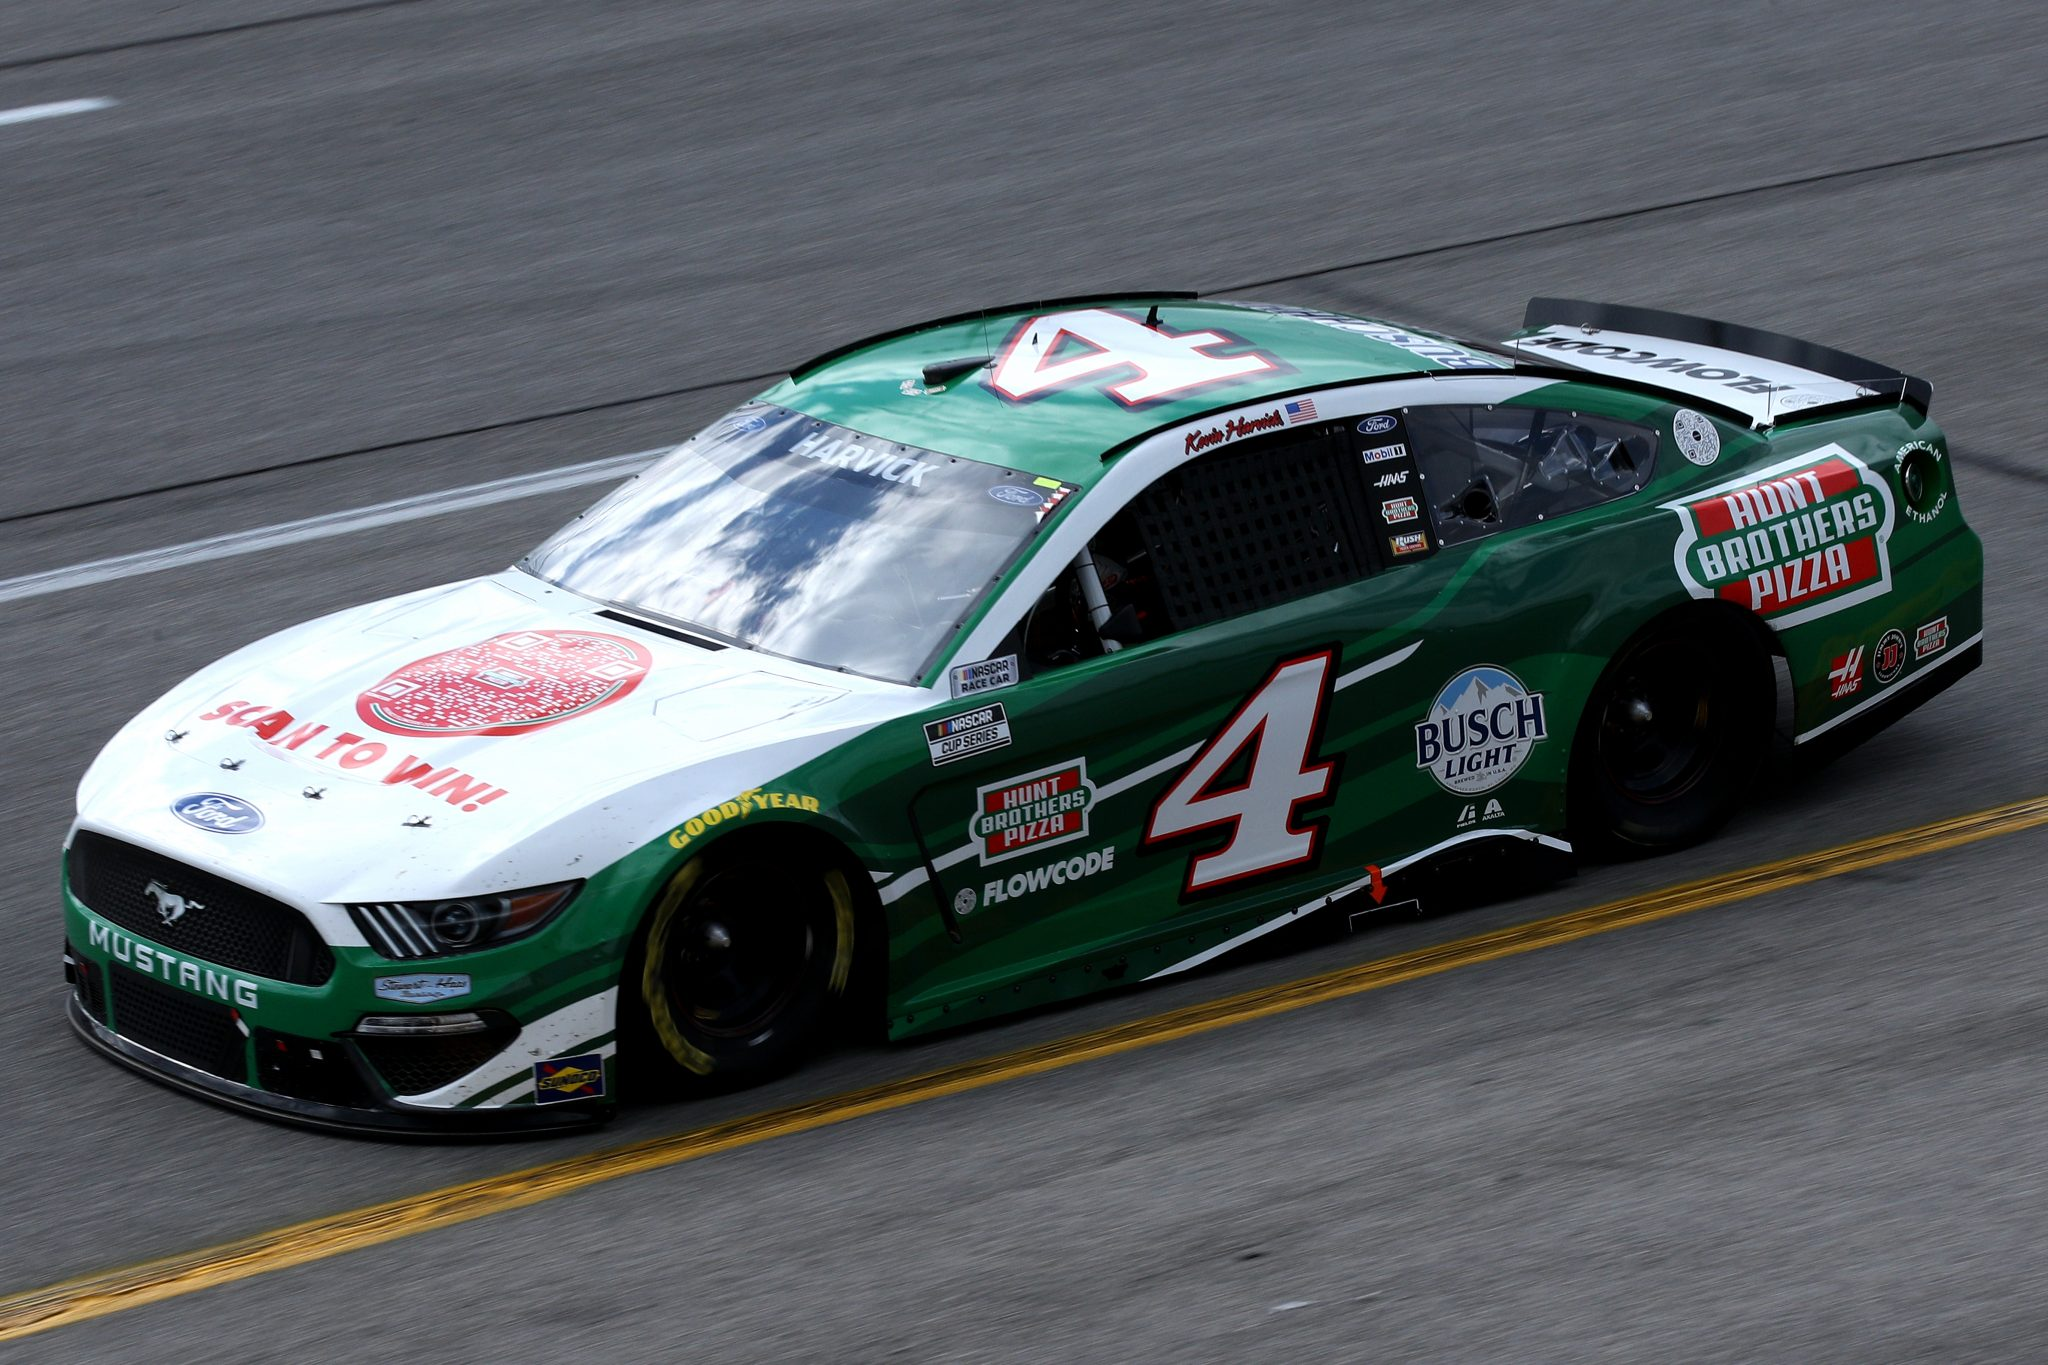 RICHMOND, VIRGINIA - APRIL 18: Kevin Harvick, driver of the #4 Hunt Brother's Pizza Ford, drives during the NASCAR Cup Series Toyota Owners 400 at Richmond Raceway on April 18, 2021 in Richmond, Virginia. (Photo by Sean Gardner/Getty Images) | Getty Images